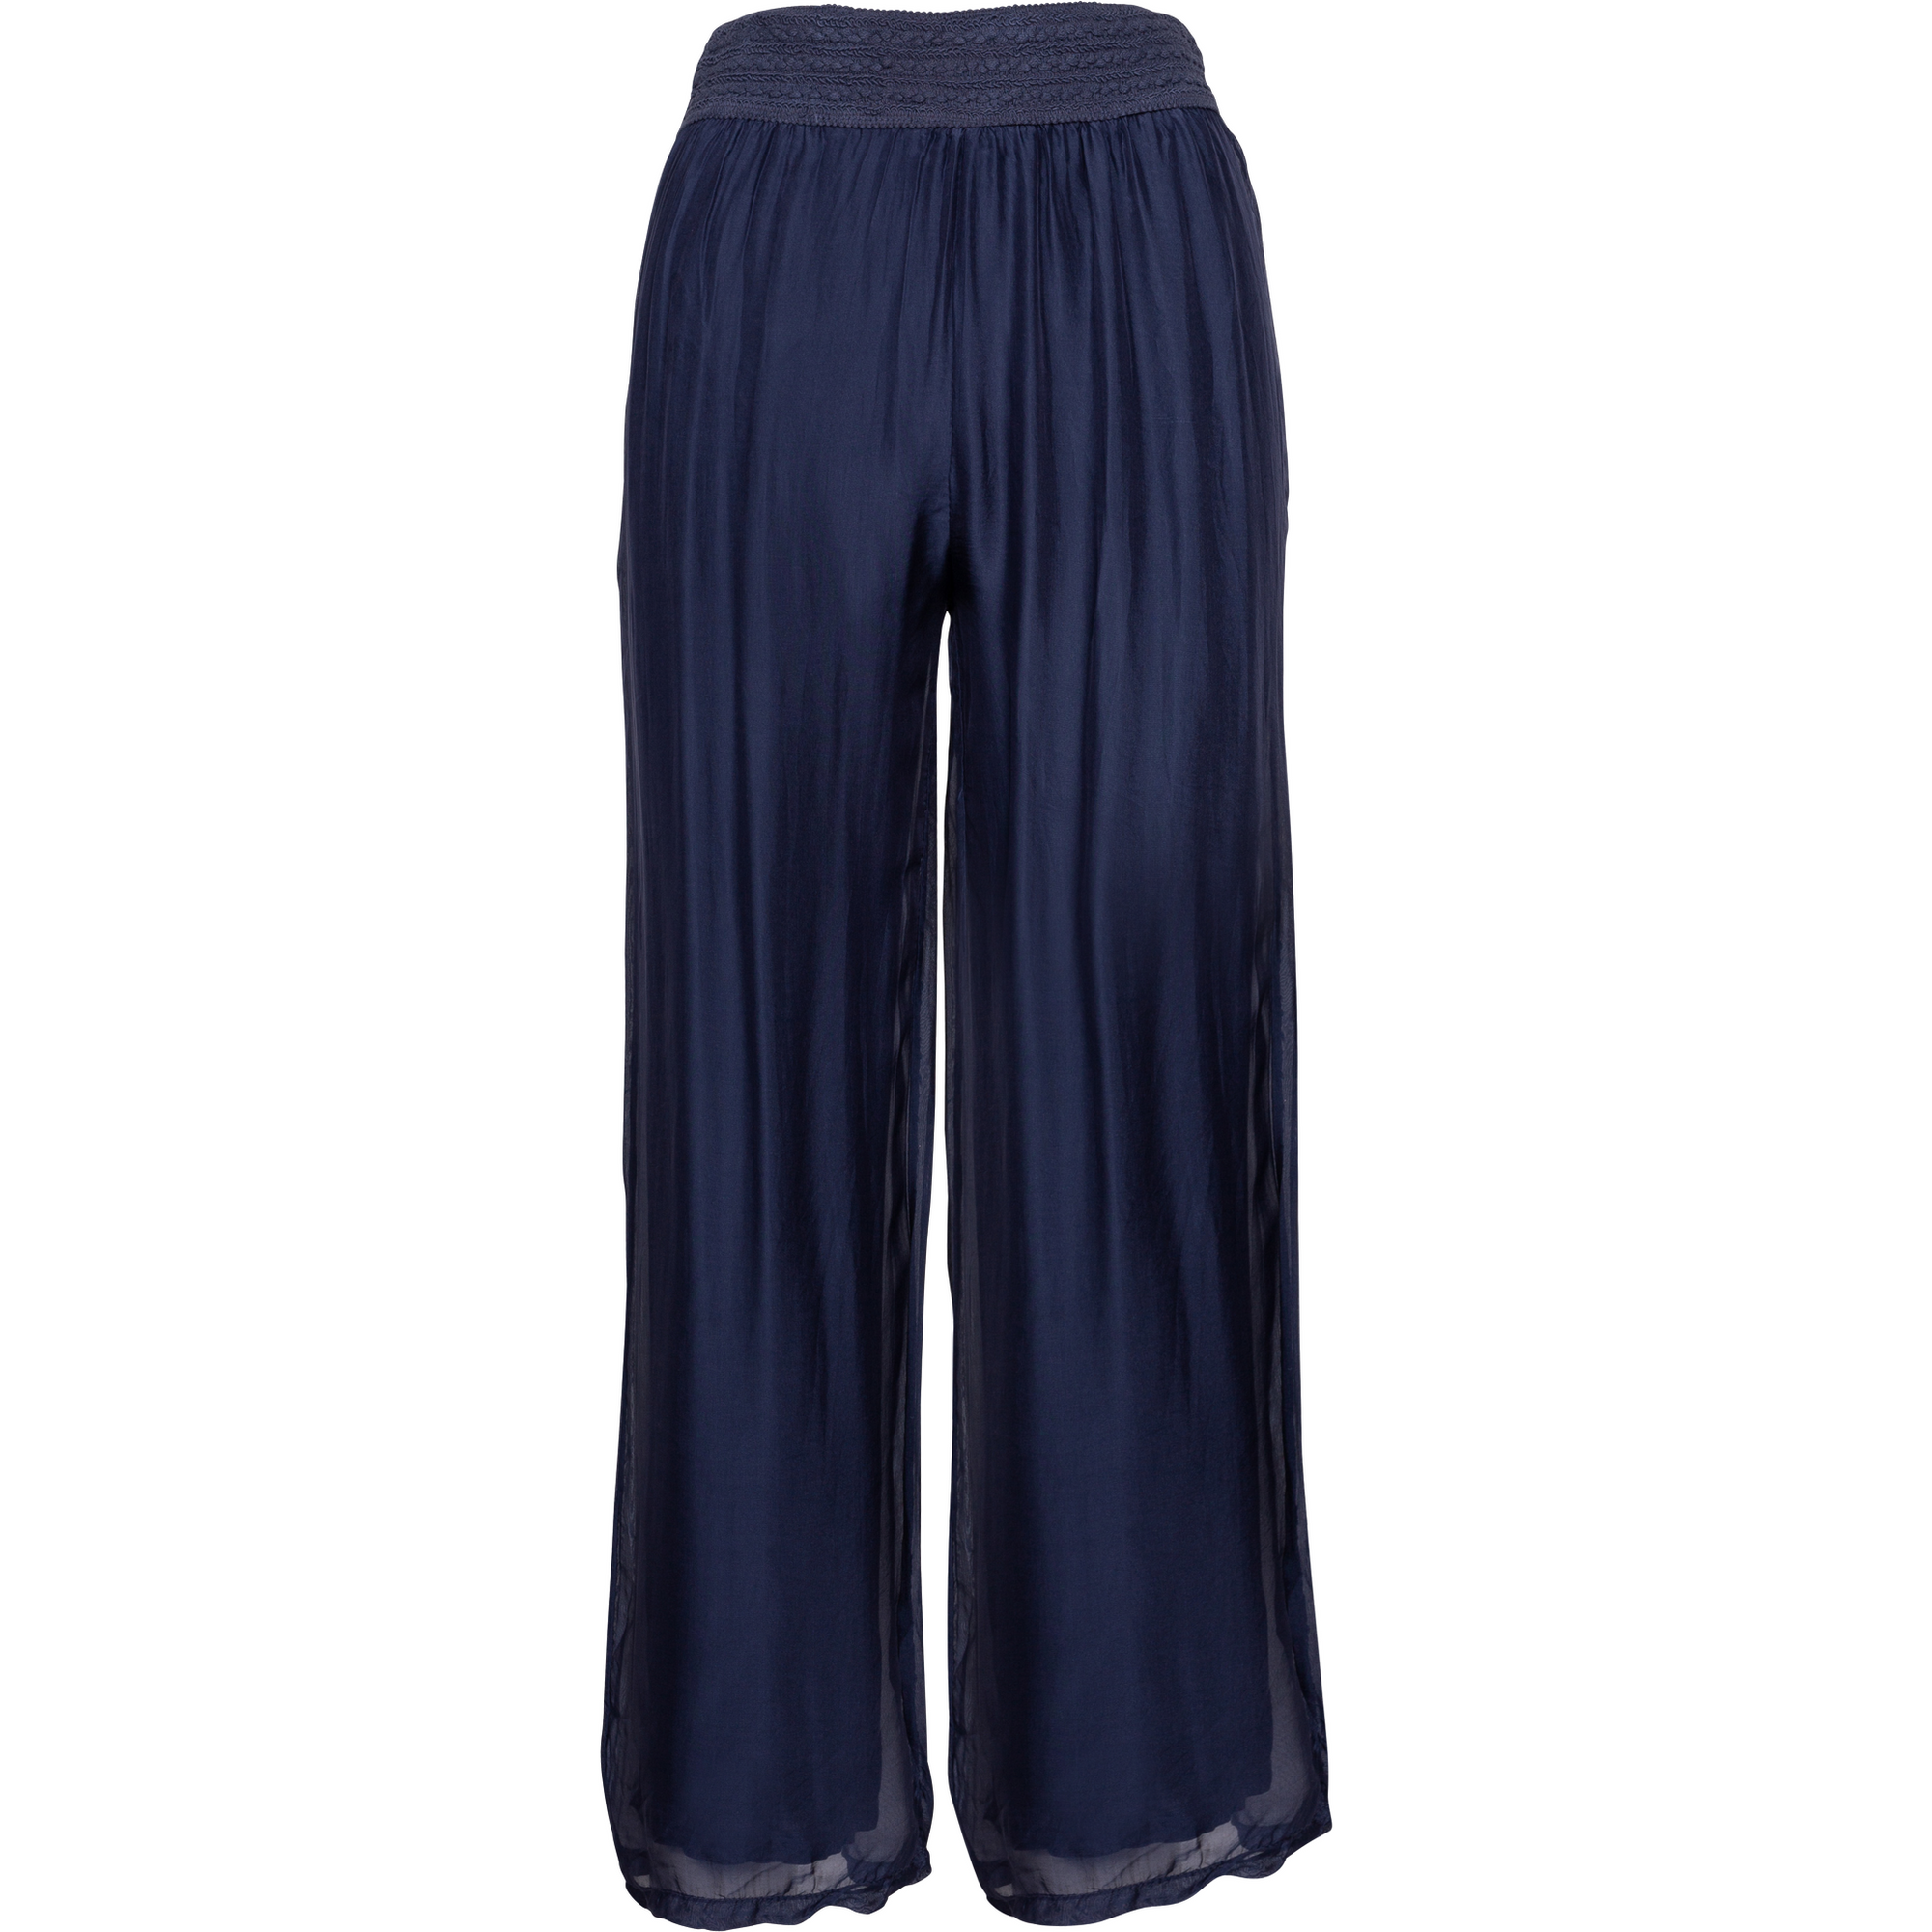 M Made In Italy Woven Silk Pant in Navy